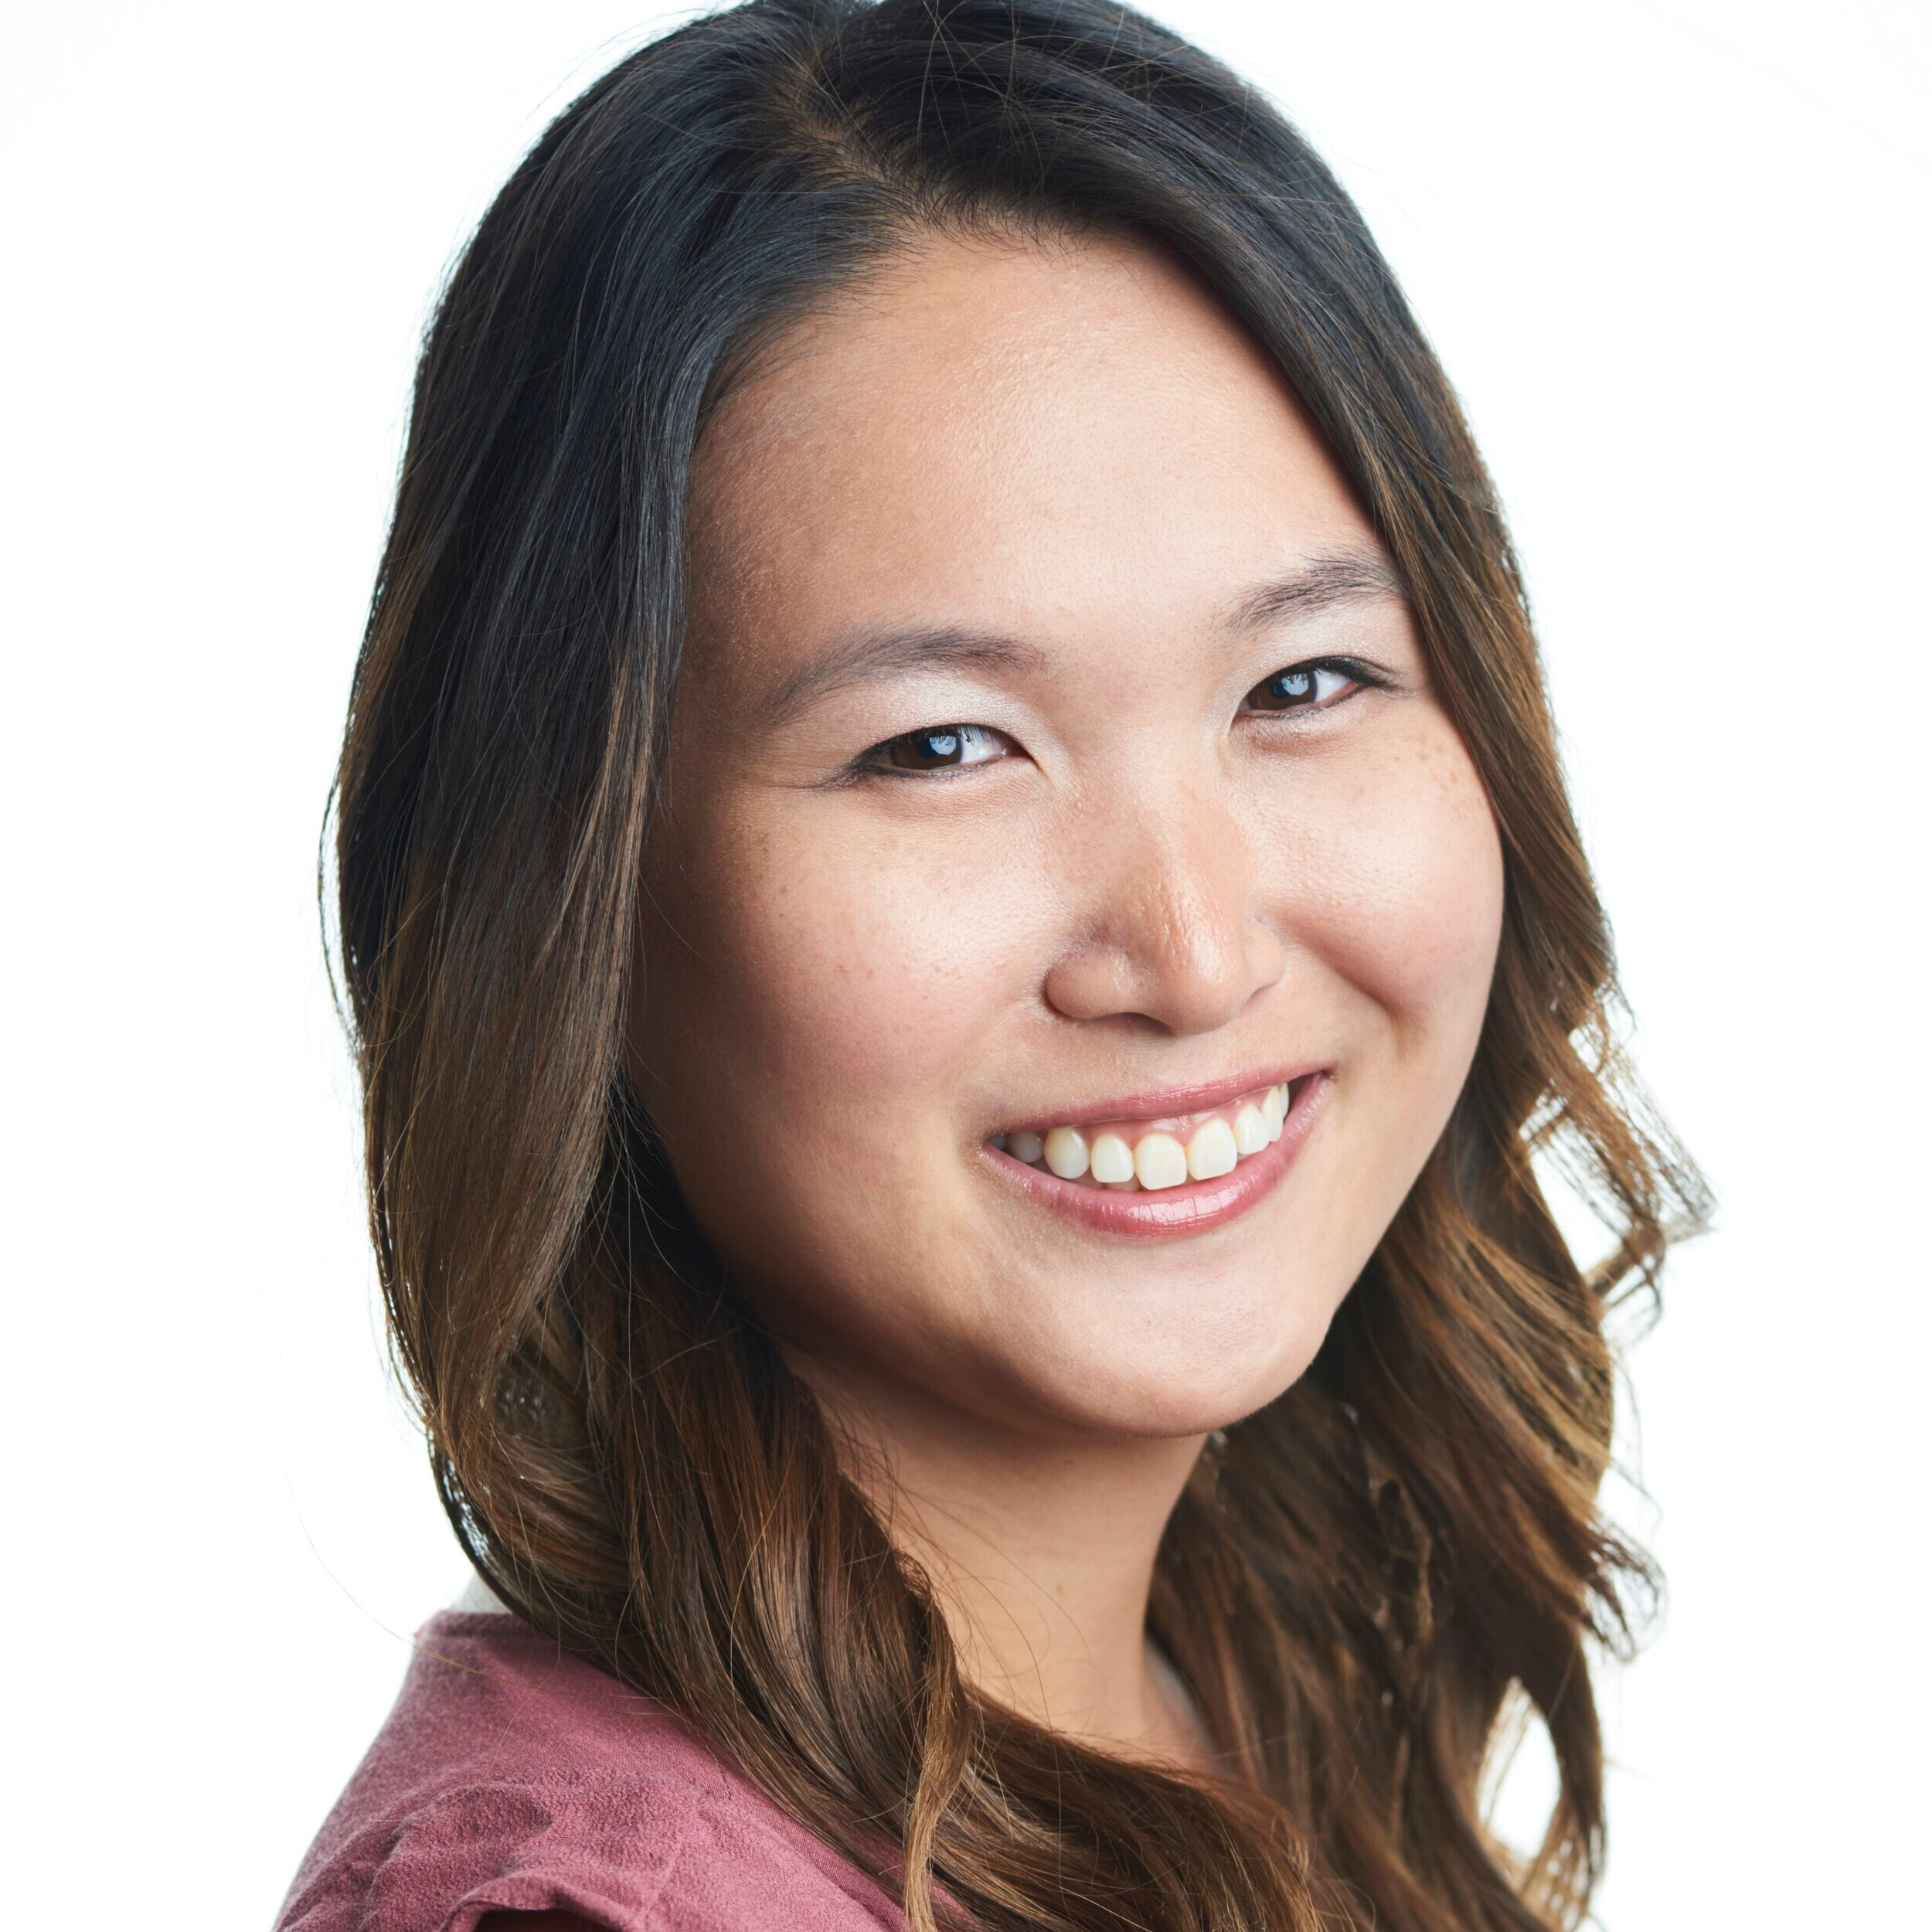 Vivian Chan, Operations Manager   Vivian has a background in marketing and sales and event management and has been working with Canadian tech companies and startups for the last 10 years. She has served as the National Accelerator Operations Manager at Wavefront and was in charge of programs and partnerships across Canada as well as managed their coworking space, community and multiple events as well as helped Lighthouse Labs launch the new Devhub in Vancouver. She is now working with multiple organizations, including YELL Canada, on various projects and initiatives. Passionate about supporting entrepreneurs and giving back to her community, she currently serves as Co-Chair of Vancouver Startup Week. In her spare time, you'll find Vivian volunteering, attending a fun event or concert and petting every dog that she meets.